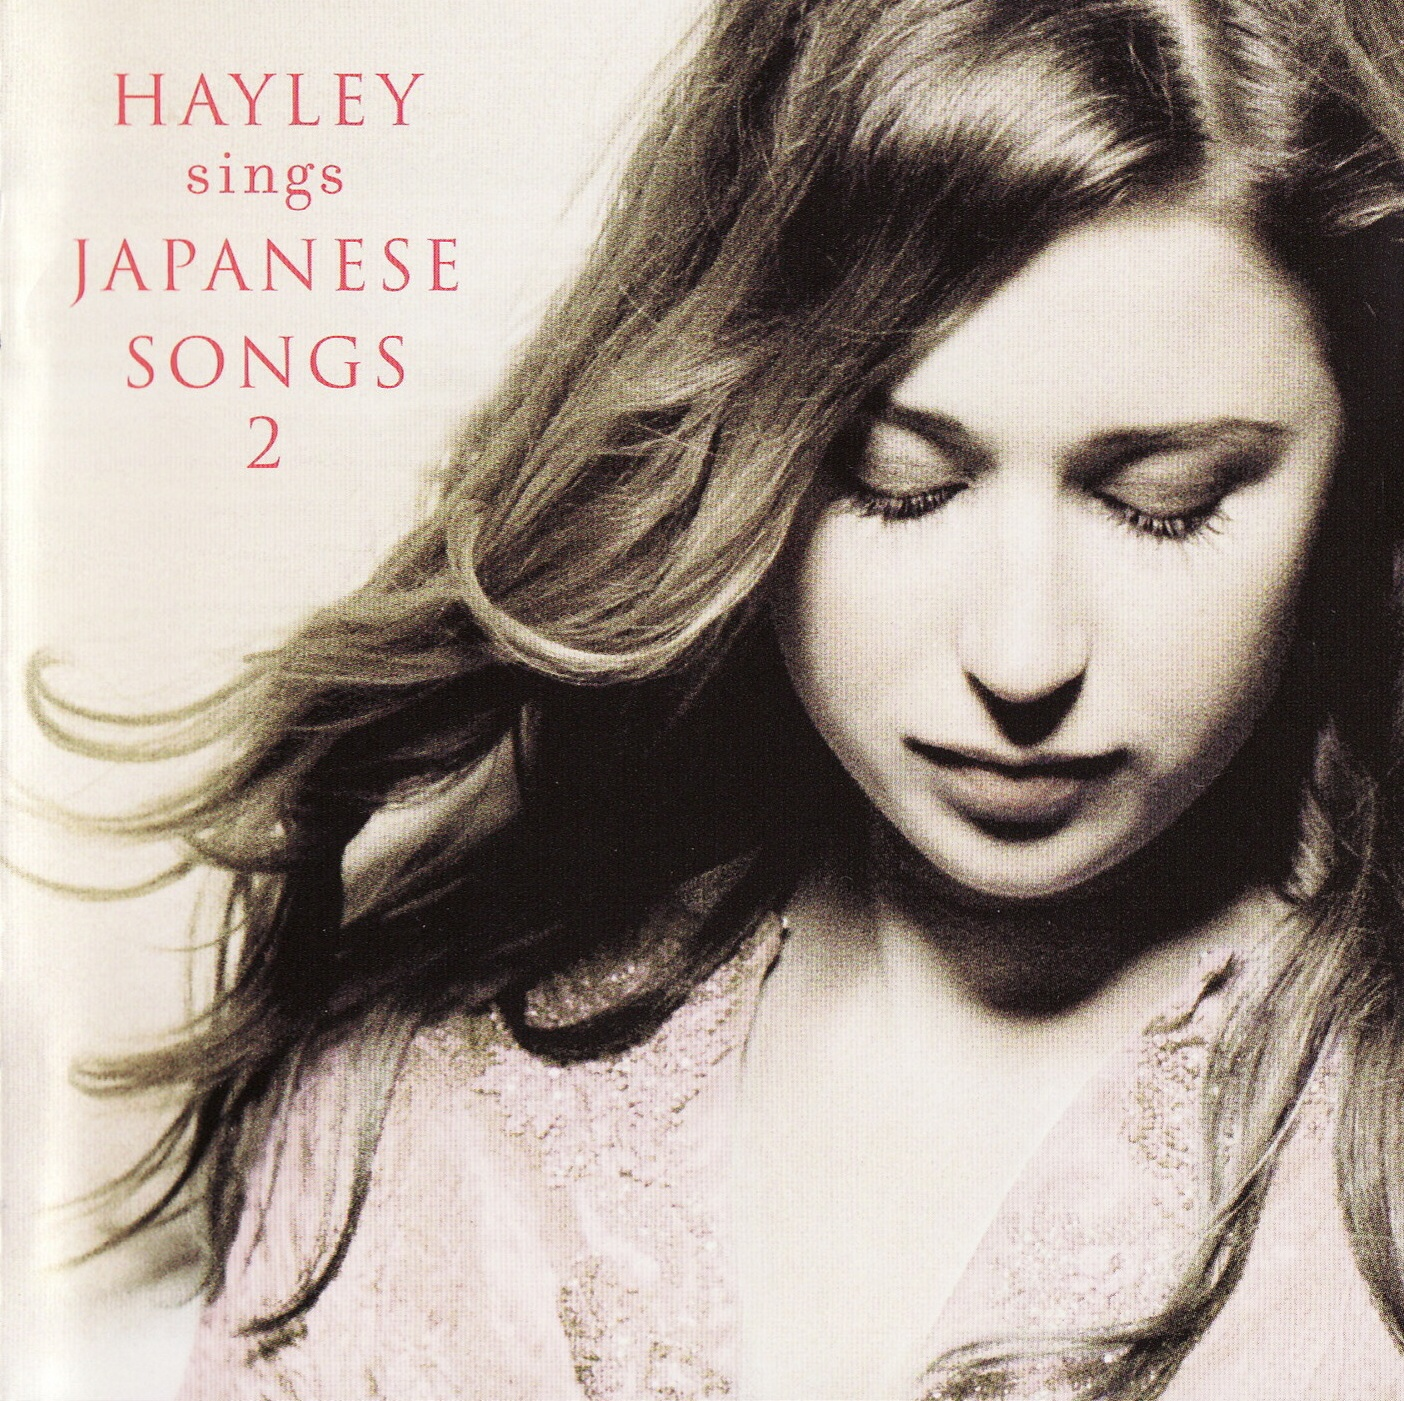 Hayley Westenra - Hayley Sings Japanese Songs Vol.02 - Front